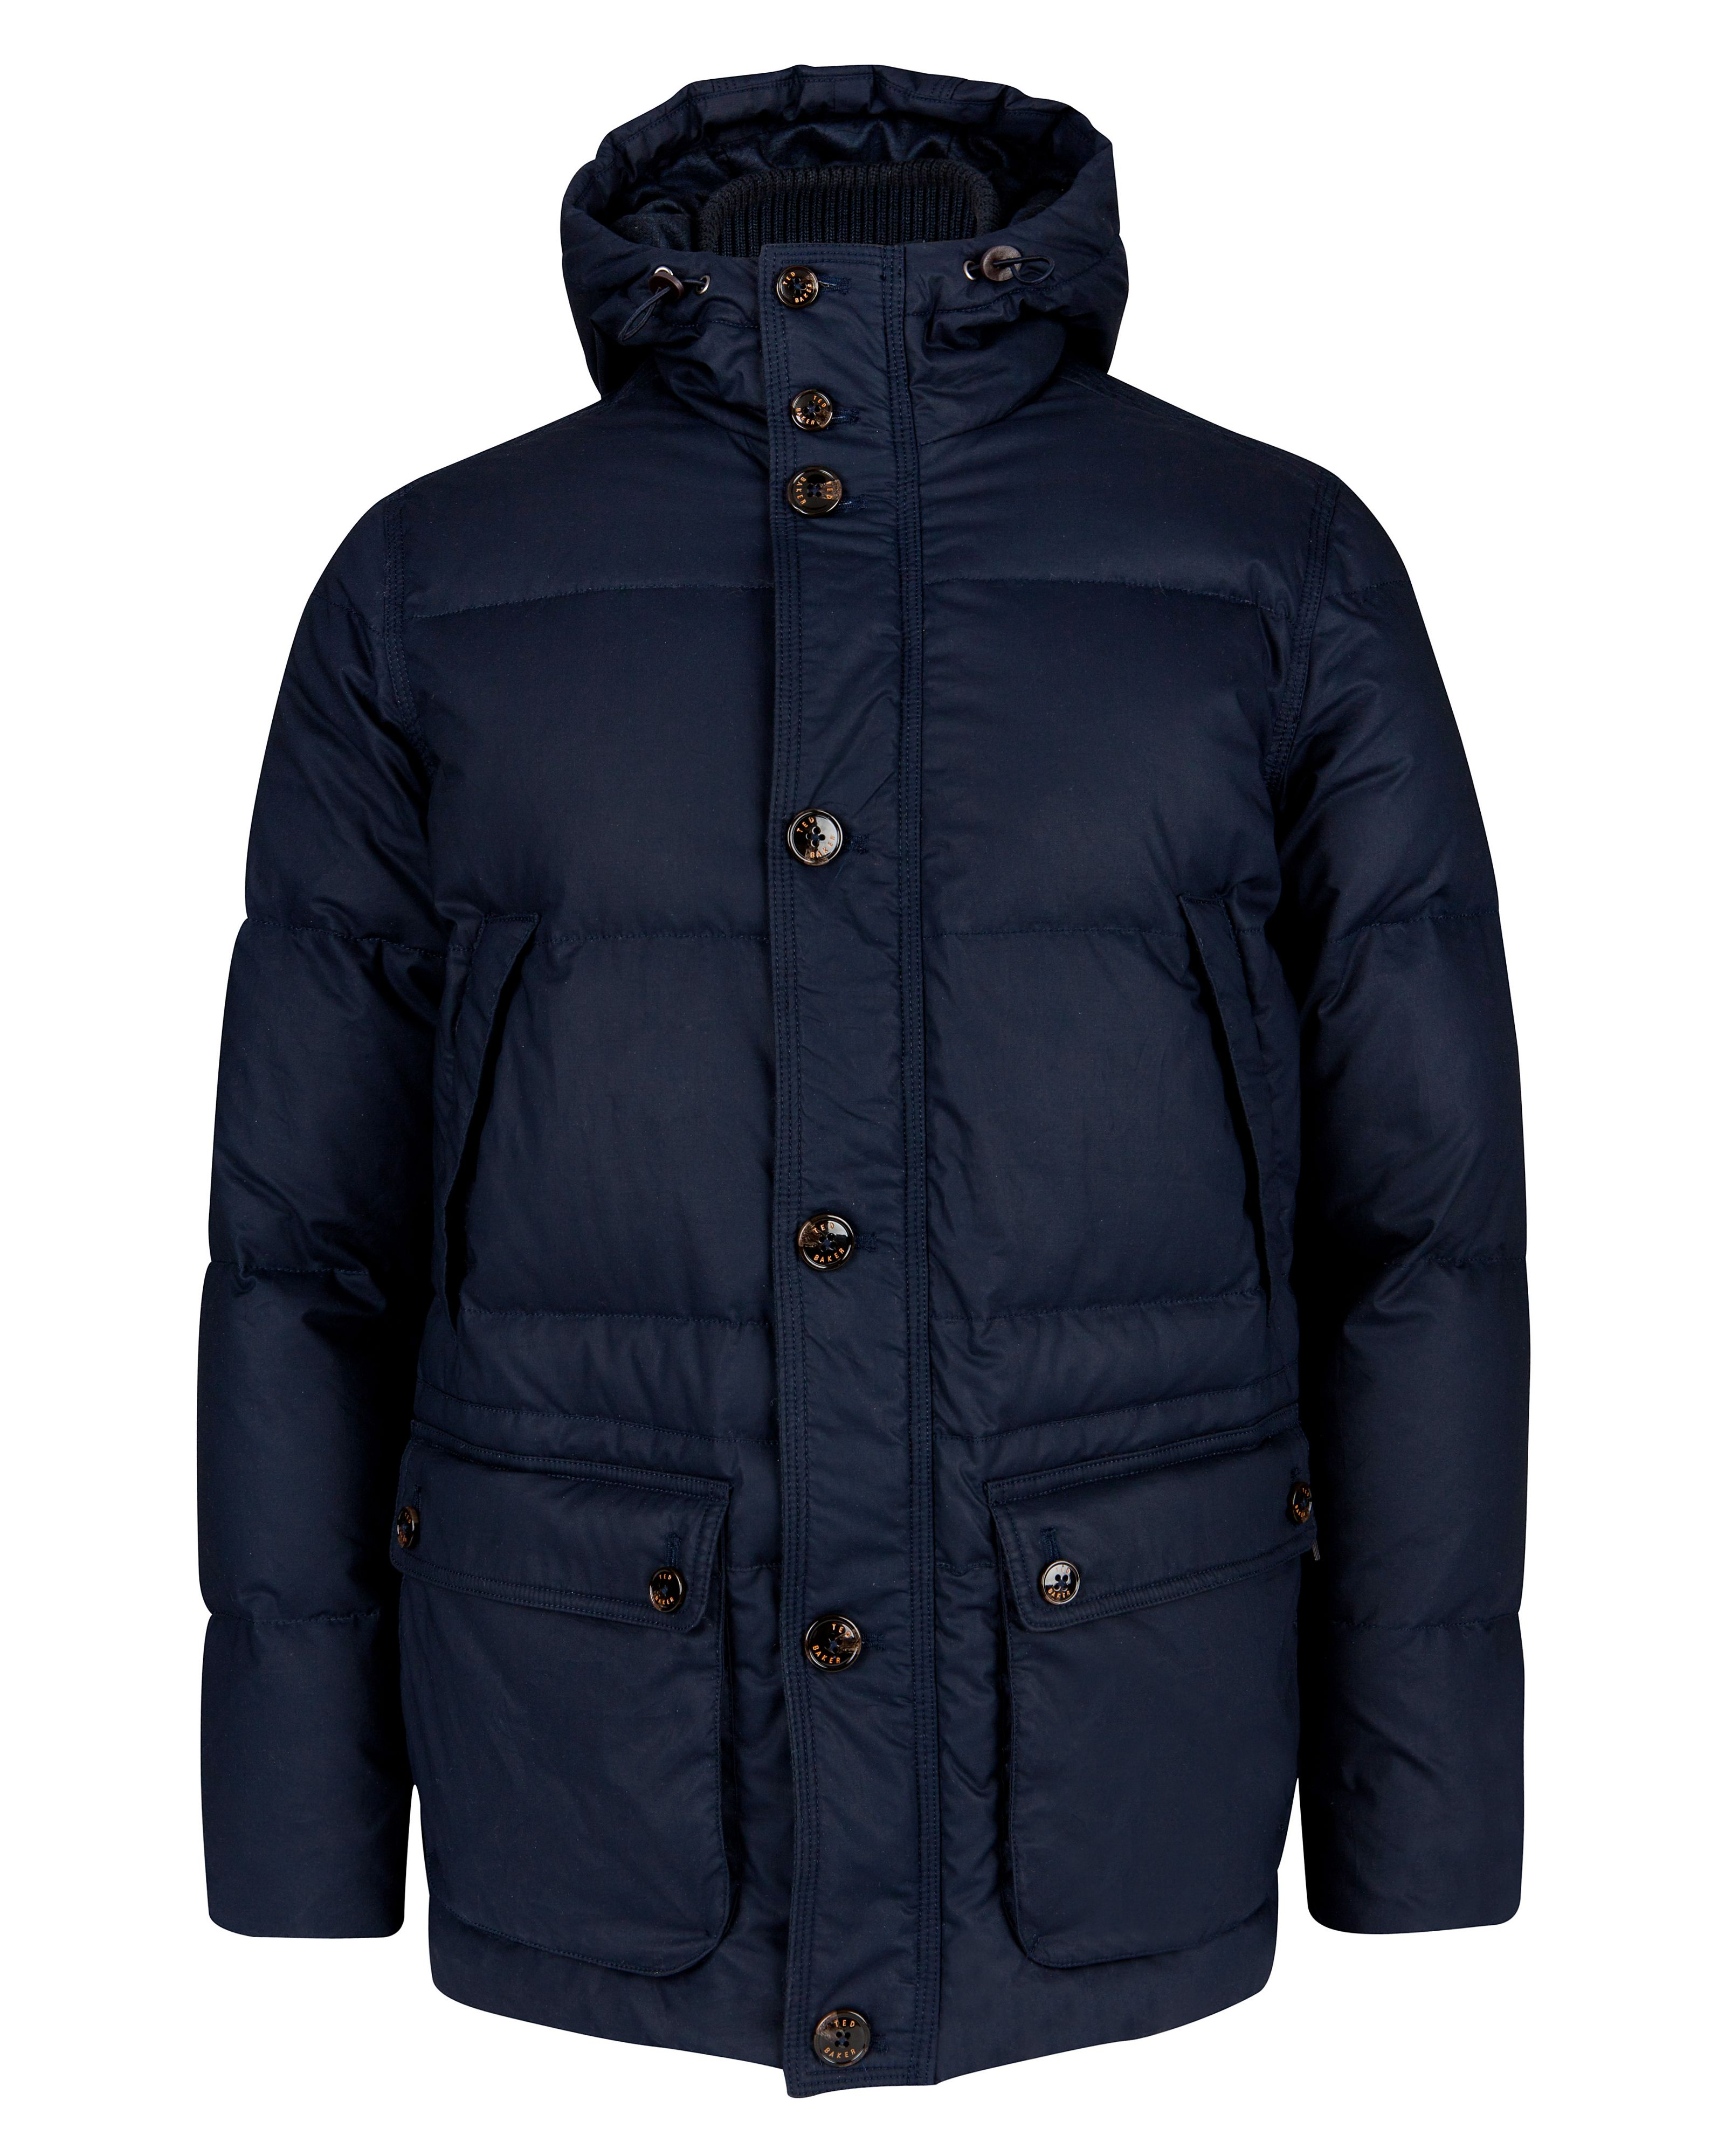 Noworie hooded puffer coat